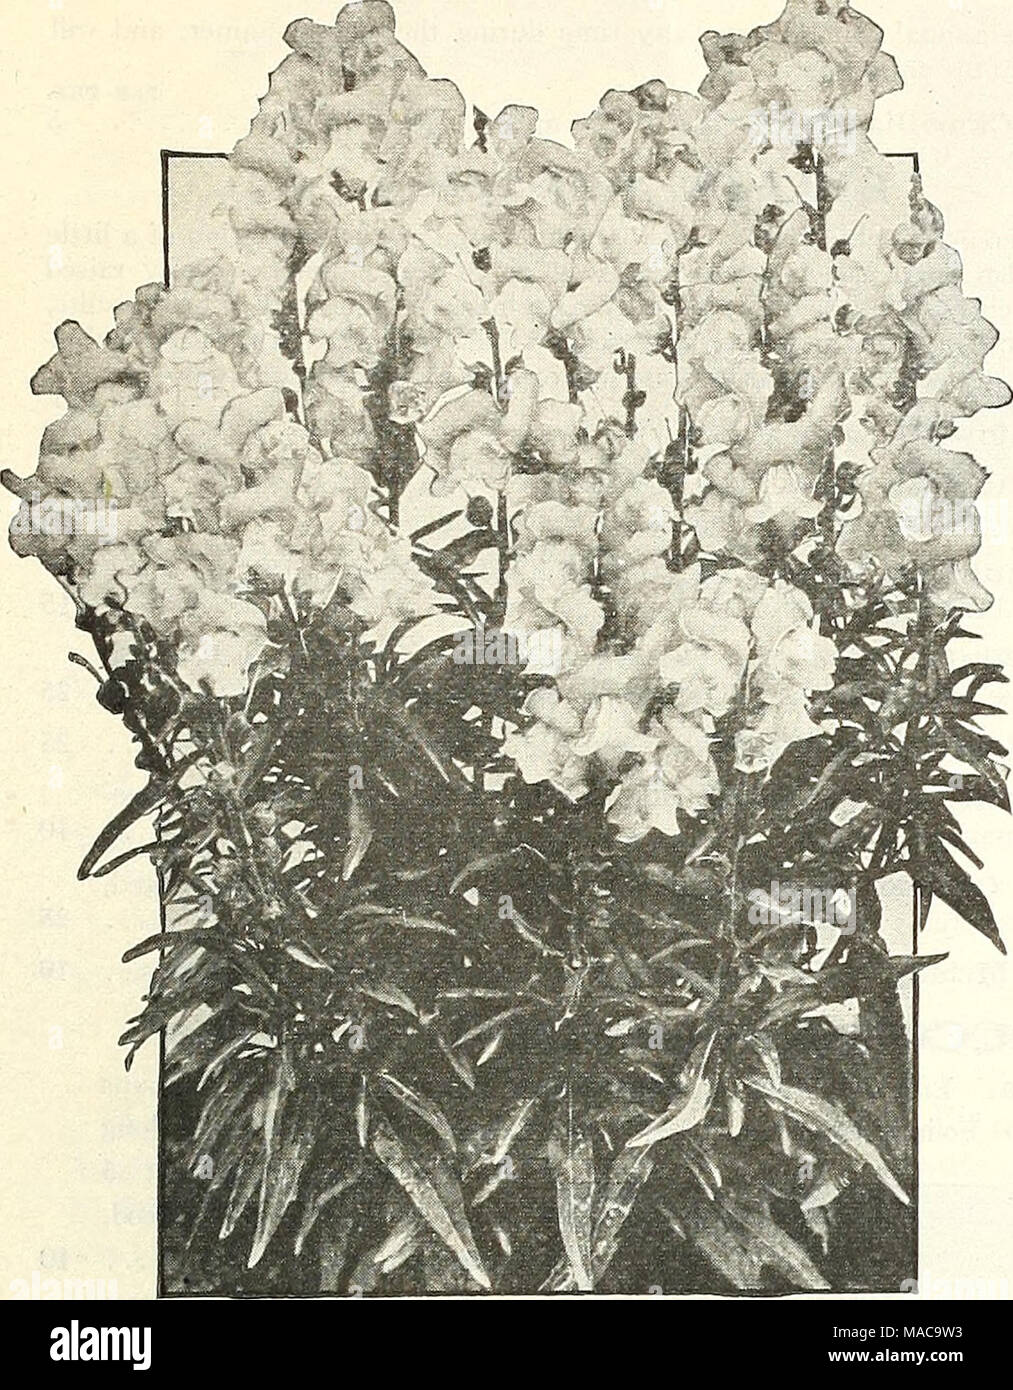 . Dreer's mid-summer list 1922 . Antirrhinum The Fawn ANTIRRHINUM (snapdragon) Within the last few years Snapdragons have become immensely popular. This is not to be wondered at, as, whether used for cutting or for show in the garden, they are one of the most valuable flowers which can readily be grown from seed. We offer two distinct types, the large-flowering, tall-growing, or giant, and the equally large-flowered, half-dwarf variety. For winter flowering in the greenhouse seed is usually sown from July to September. Giant Varieties. Of tall growth, very large individual flowers: PER PKT. 11 Stock Photo